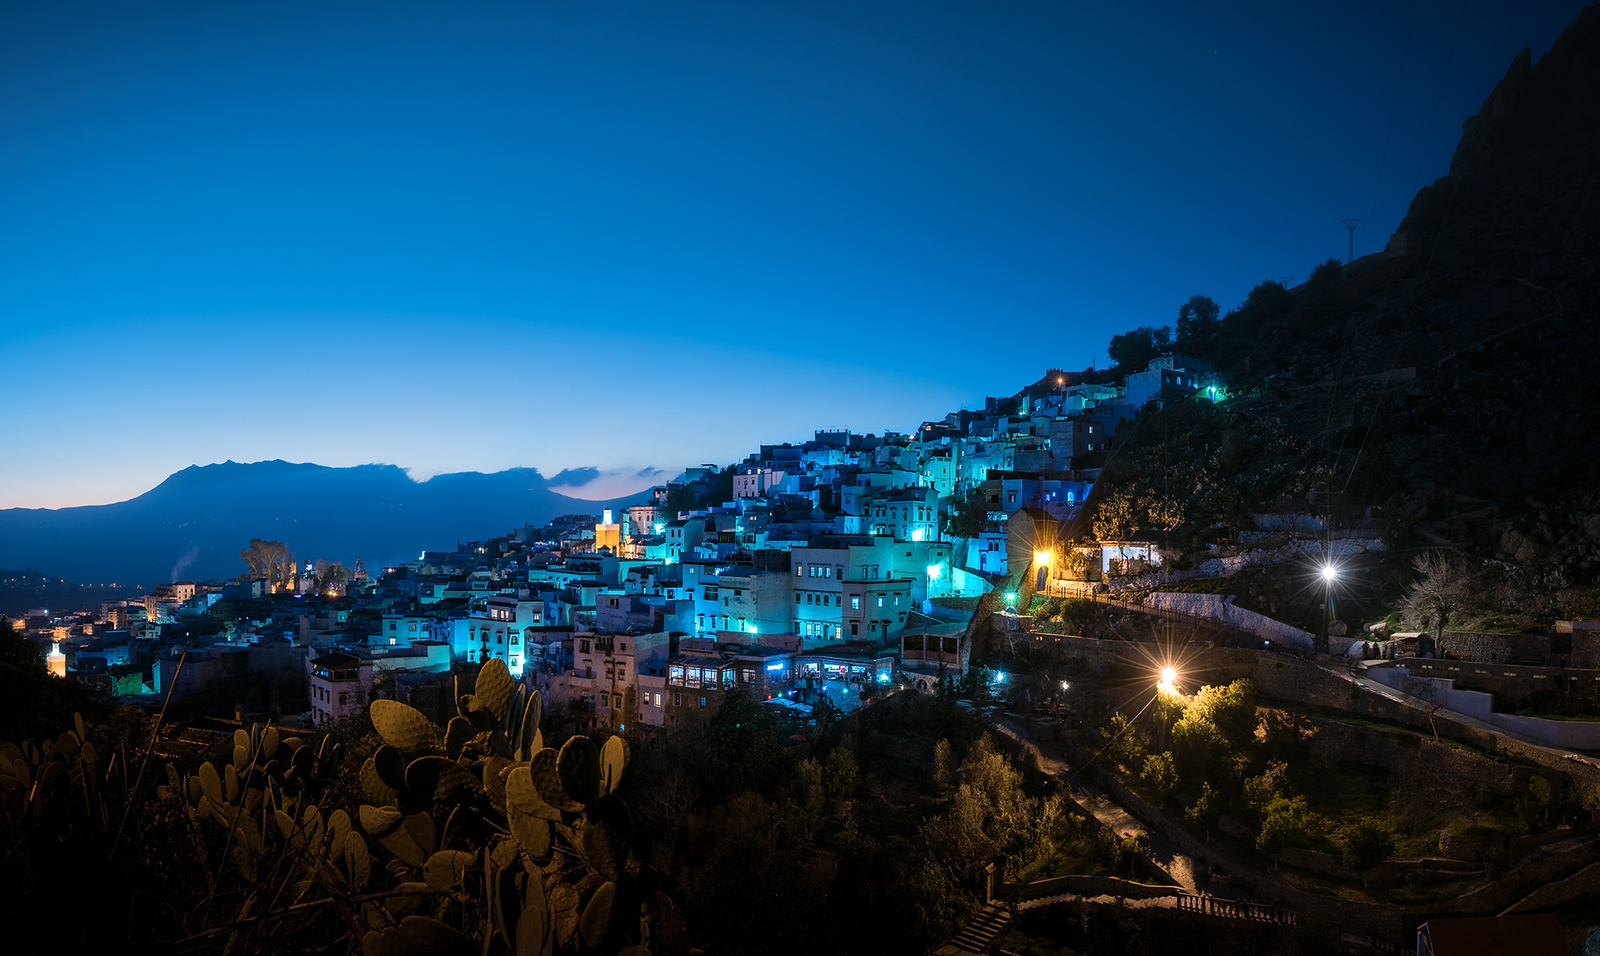 Chefchaouen Morocco at Night - cycling vacation and photography tour with Kevin Wenning